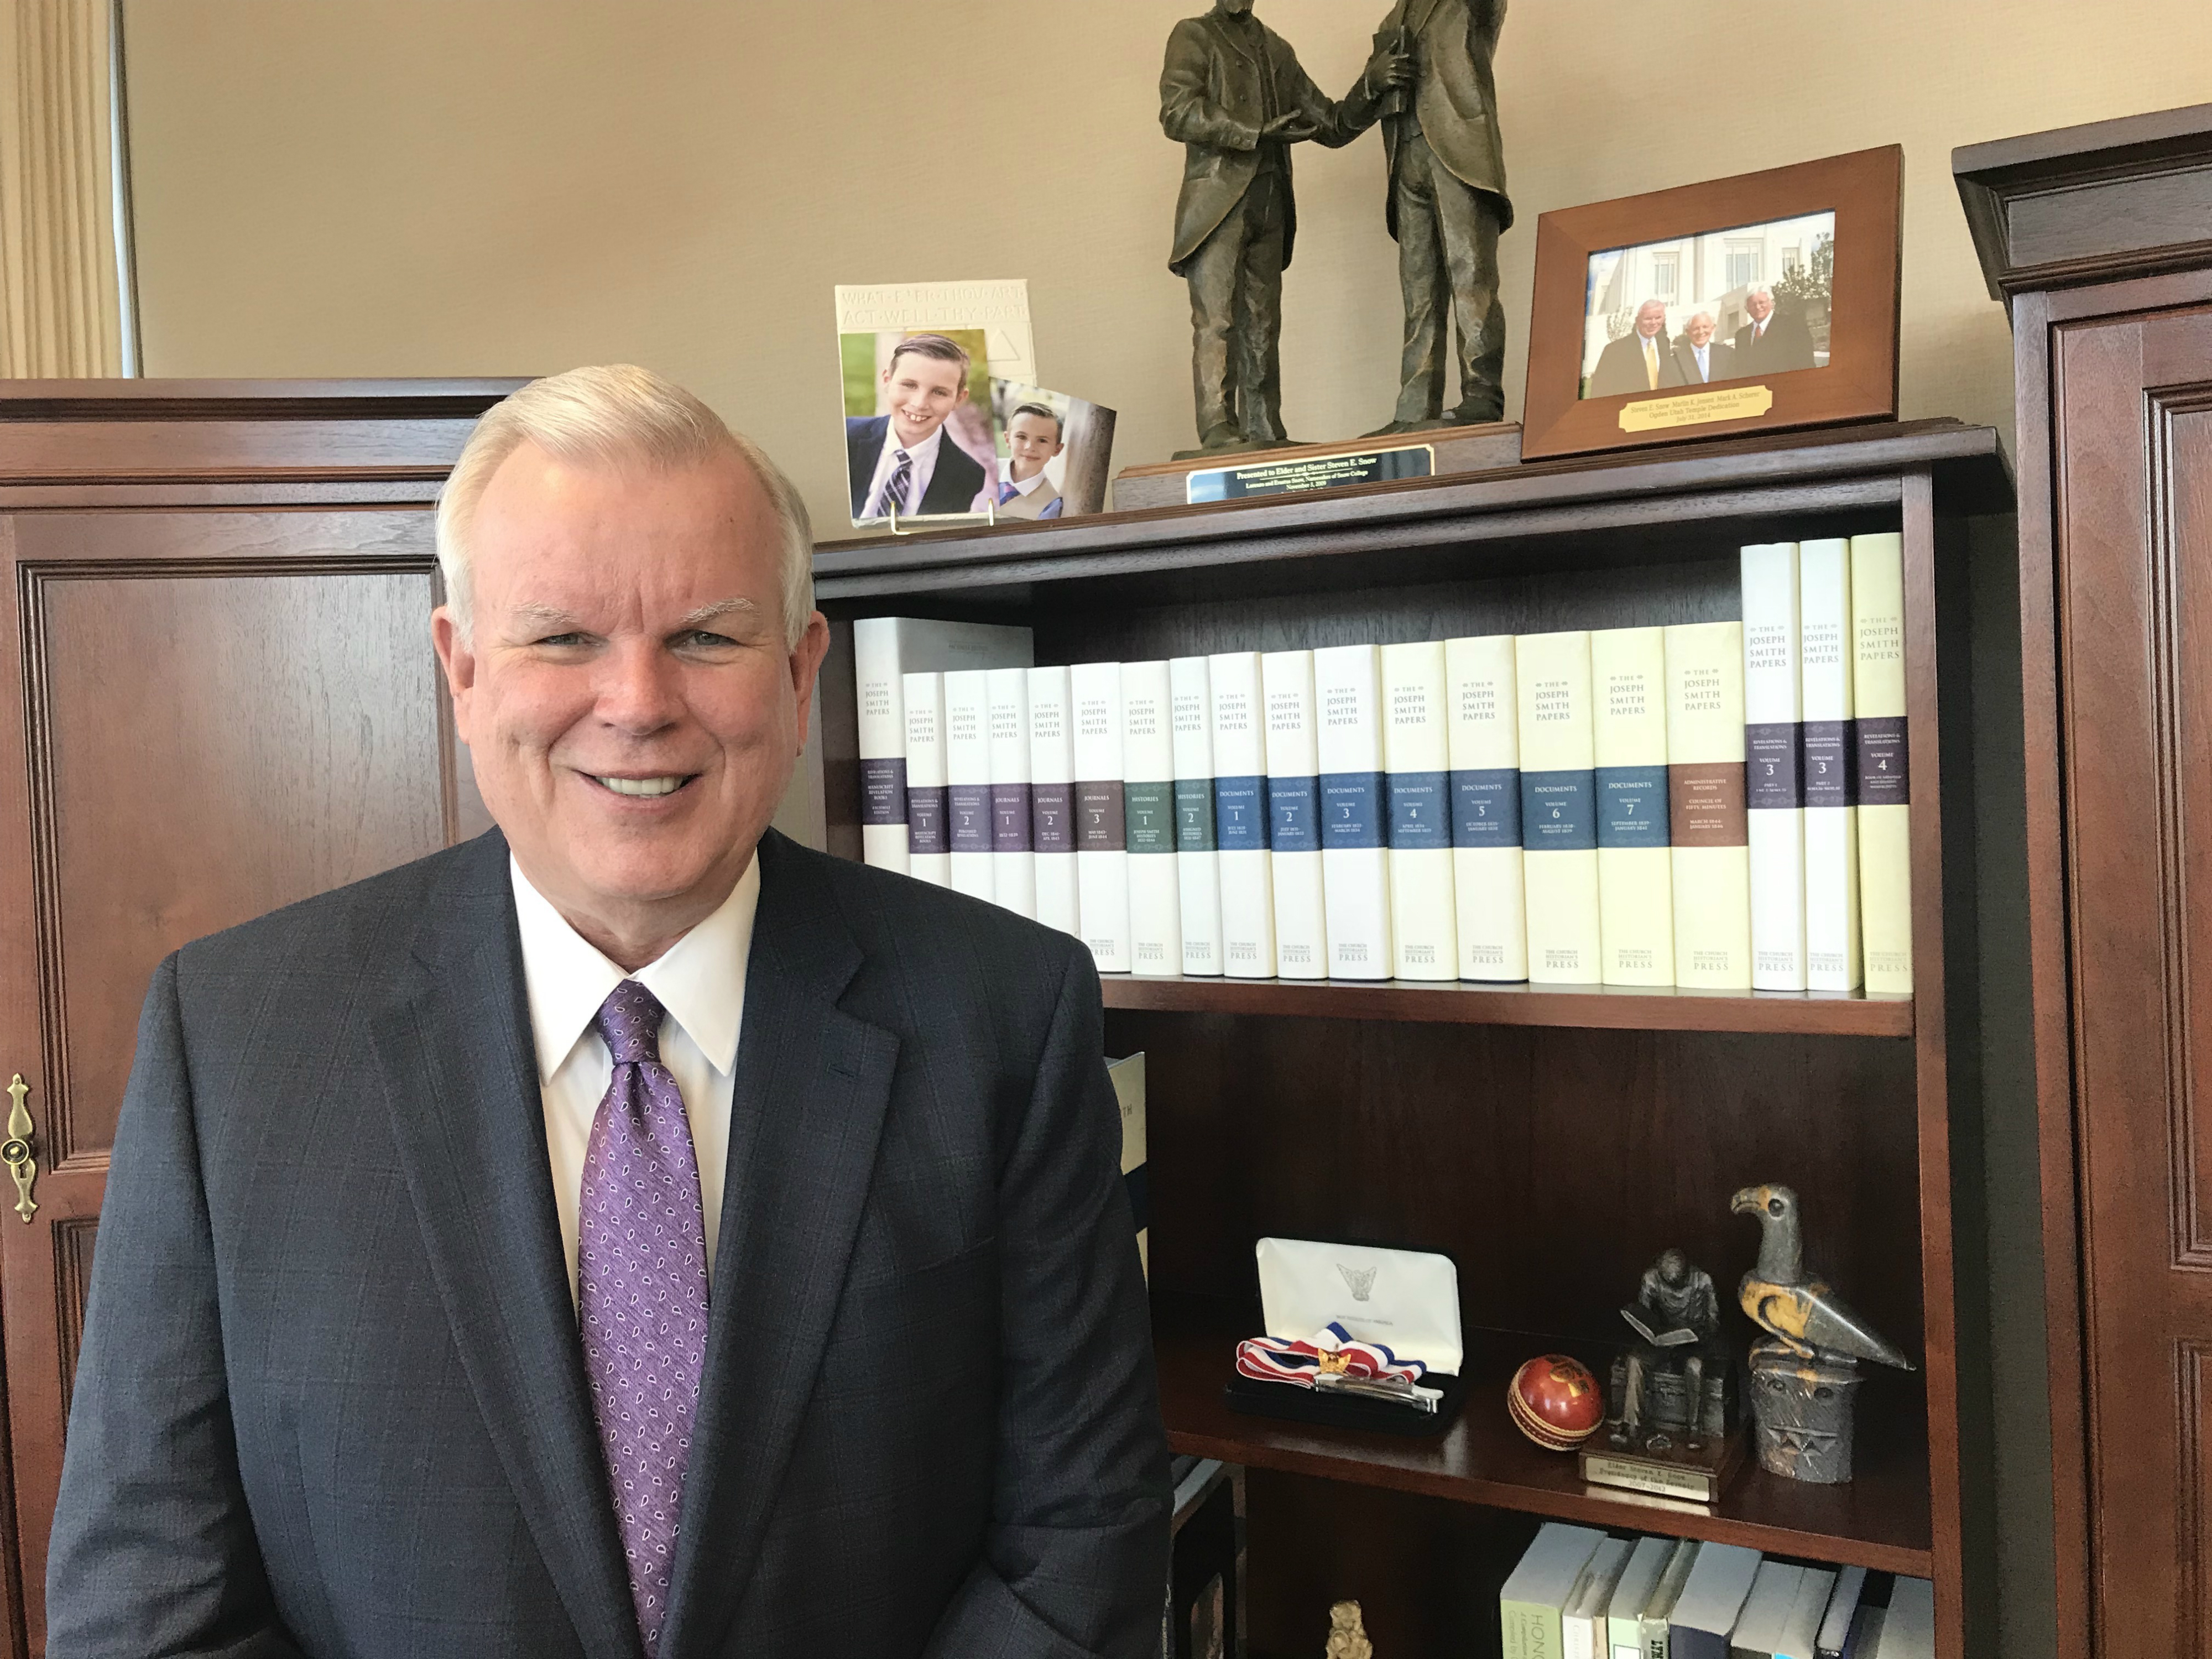 Elder Steven E. Snow, a General Authority Seventy and church historian and recorder, stands next to a bookshelf in his Church History Library office containing volumes of the Joseph Smith Papers project, published over the last decade, on Oct. 23, 2018.